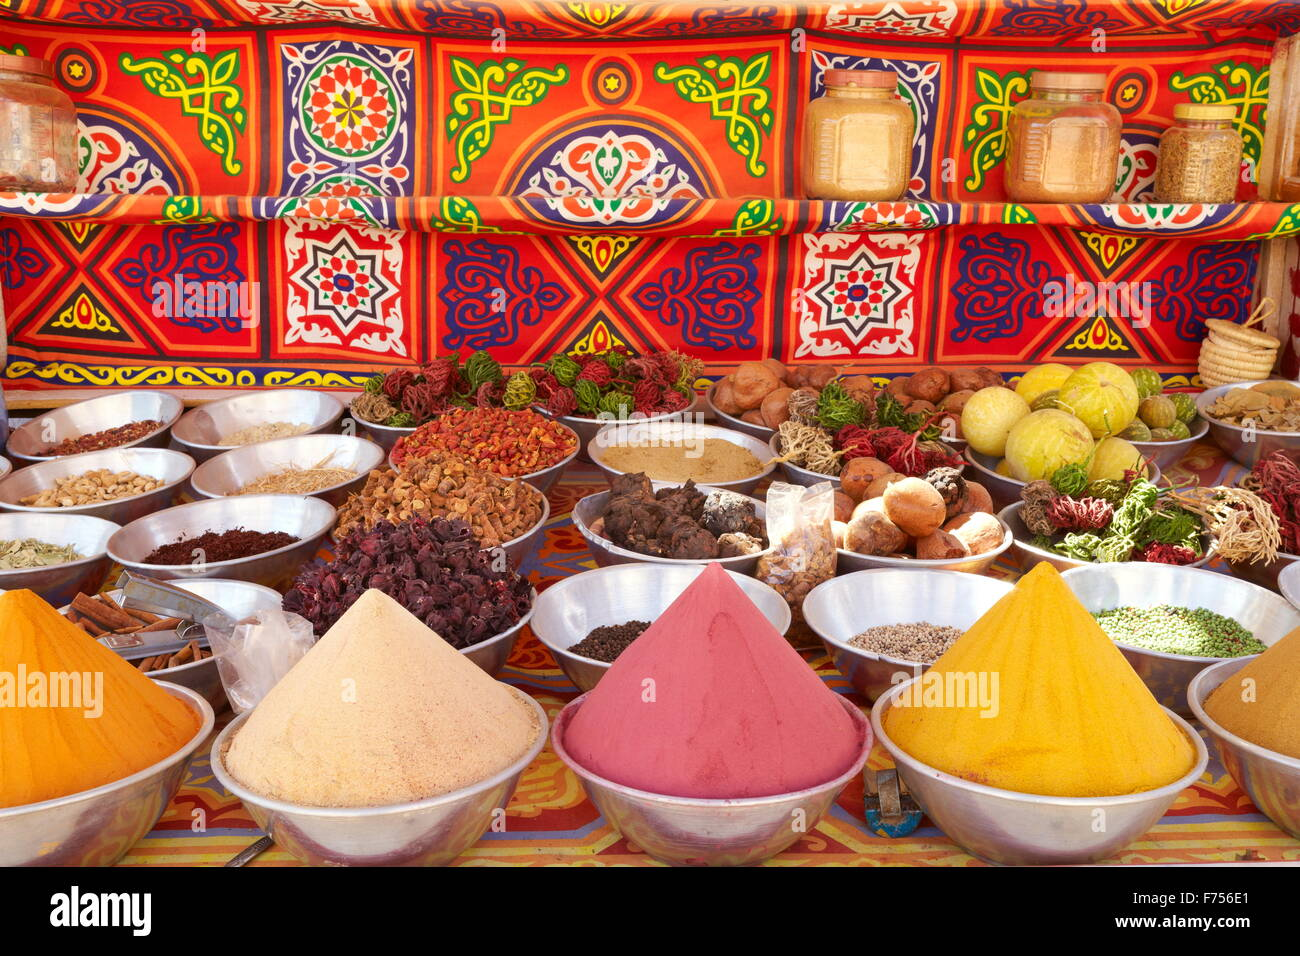 Spices shop, Nubian village near Aswan, Egypt - Stock Image